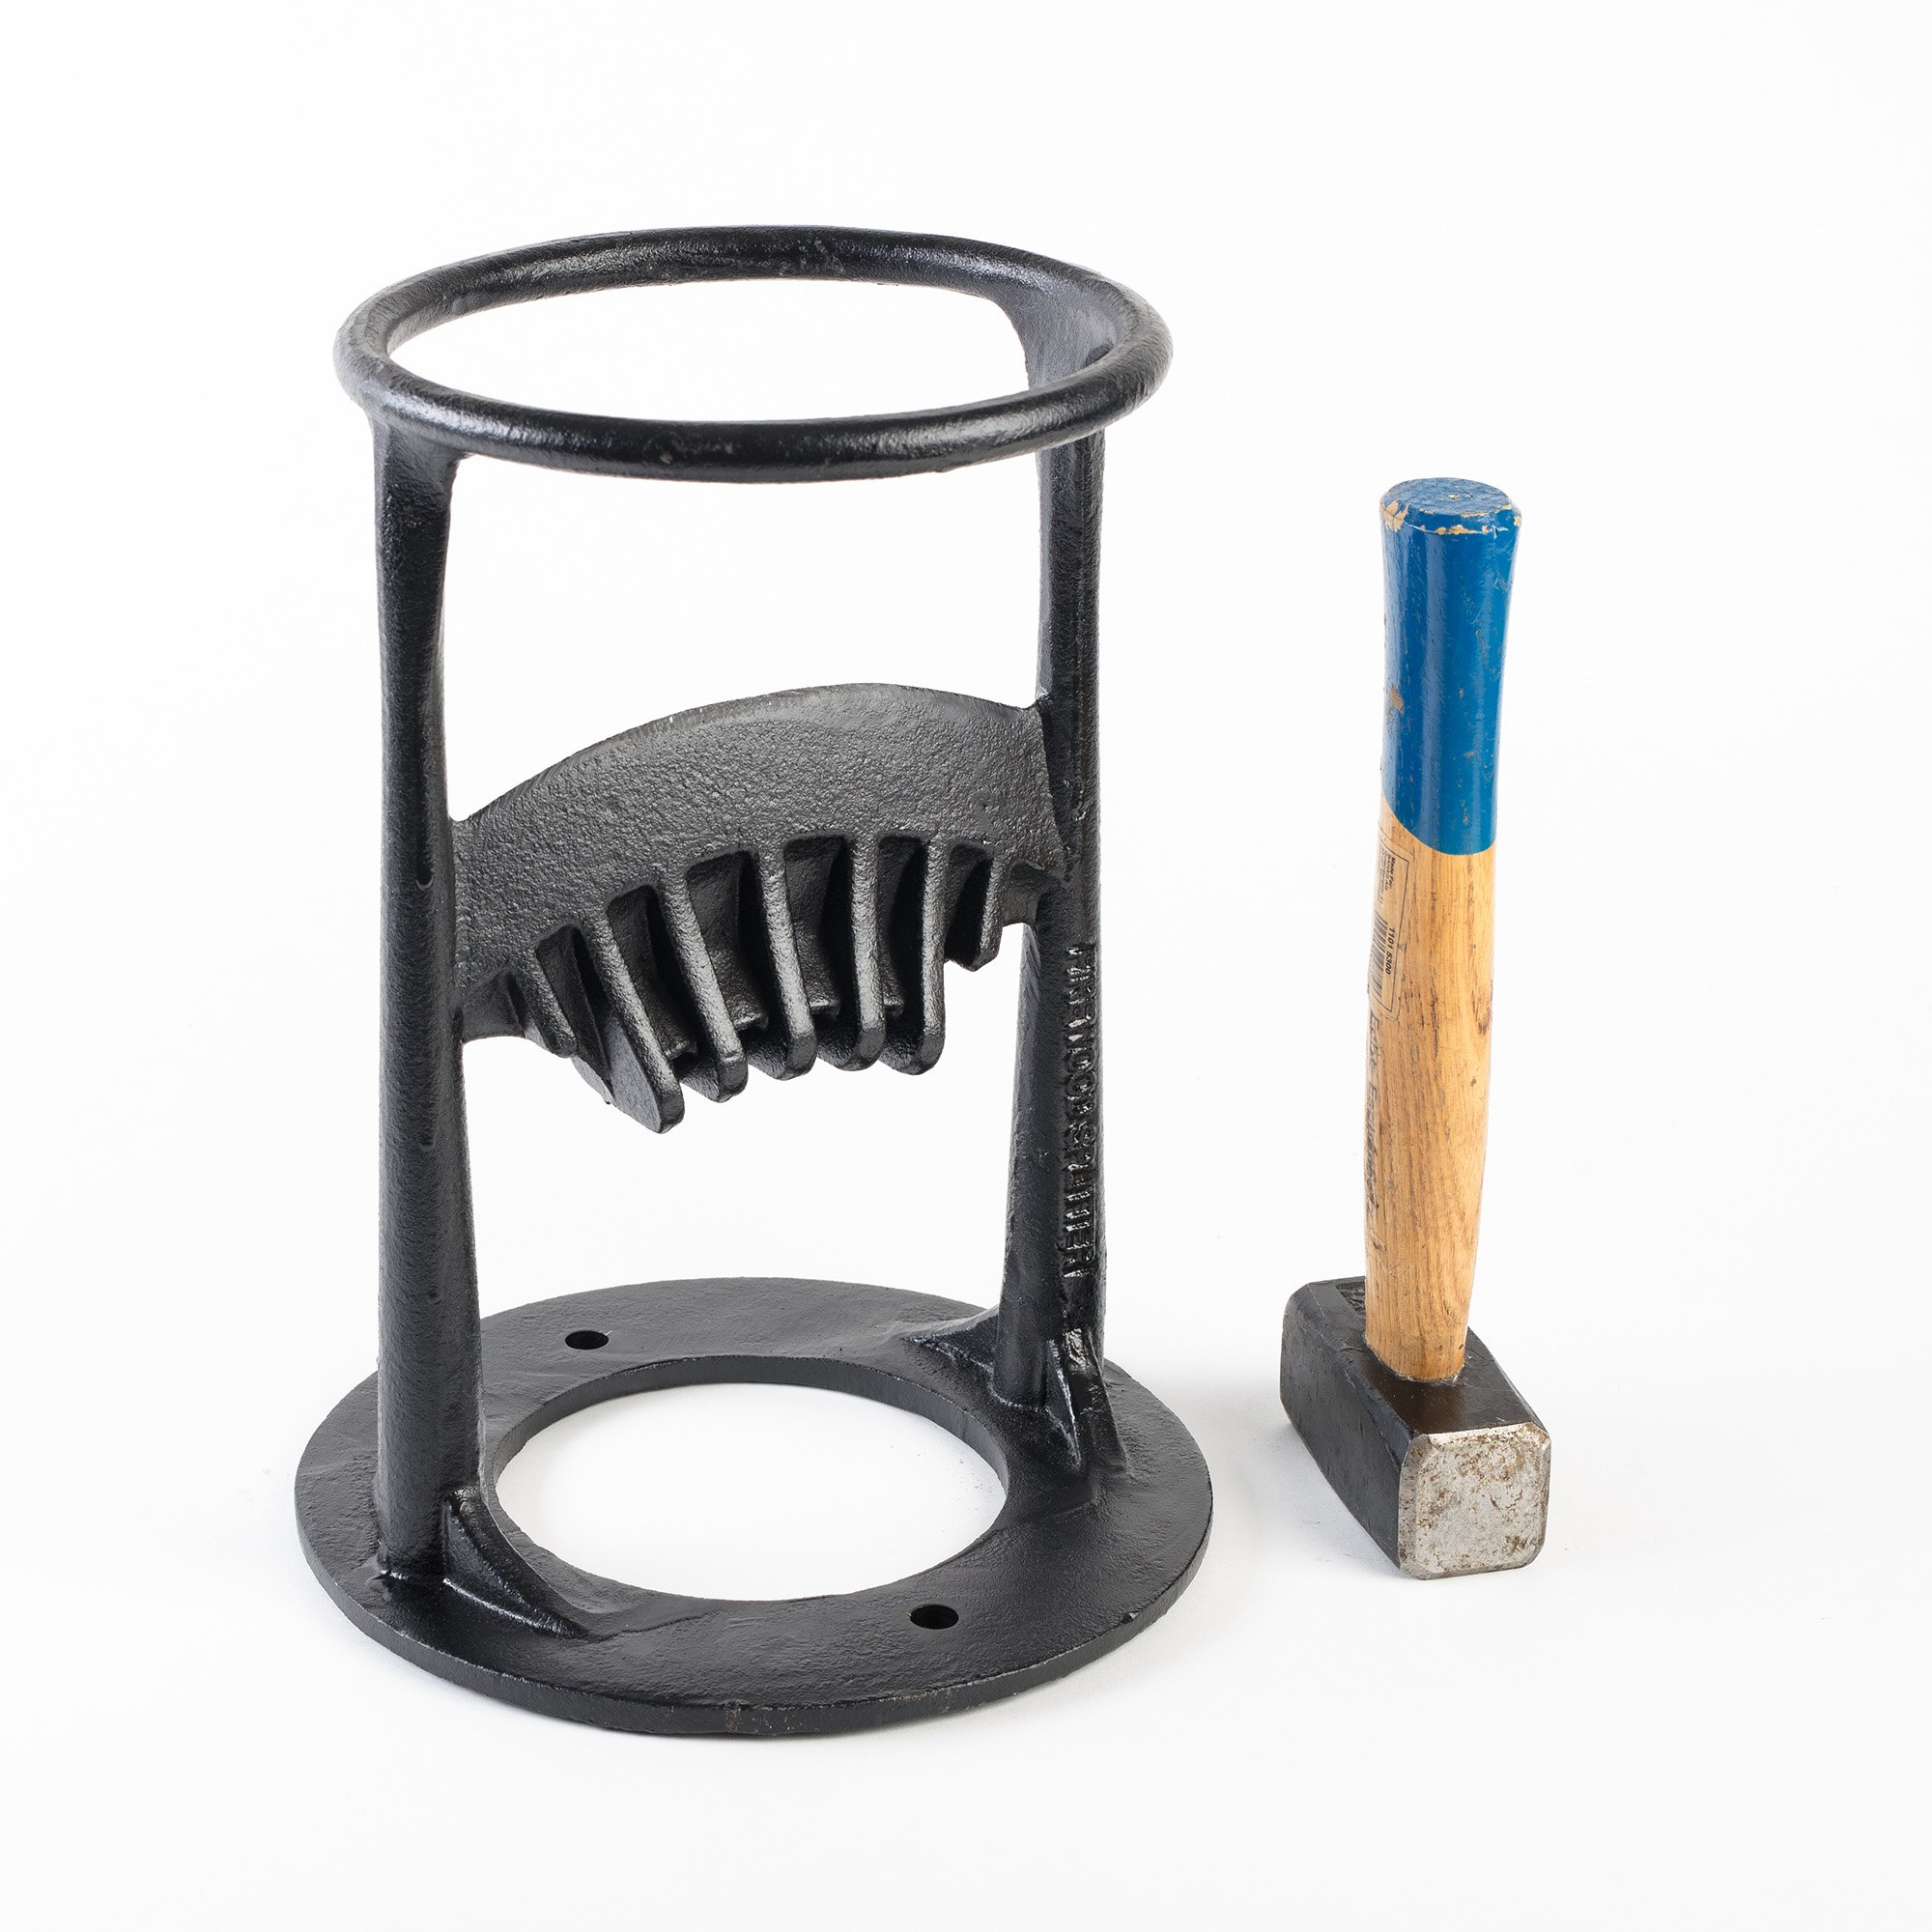 Manual Firewood and Kindling Splitter Made of Cast Iron – Safe & Easy Way to Split Logs for Wood Stove, Fireplace